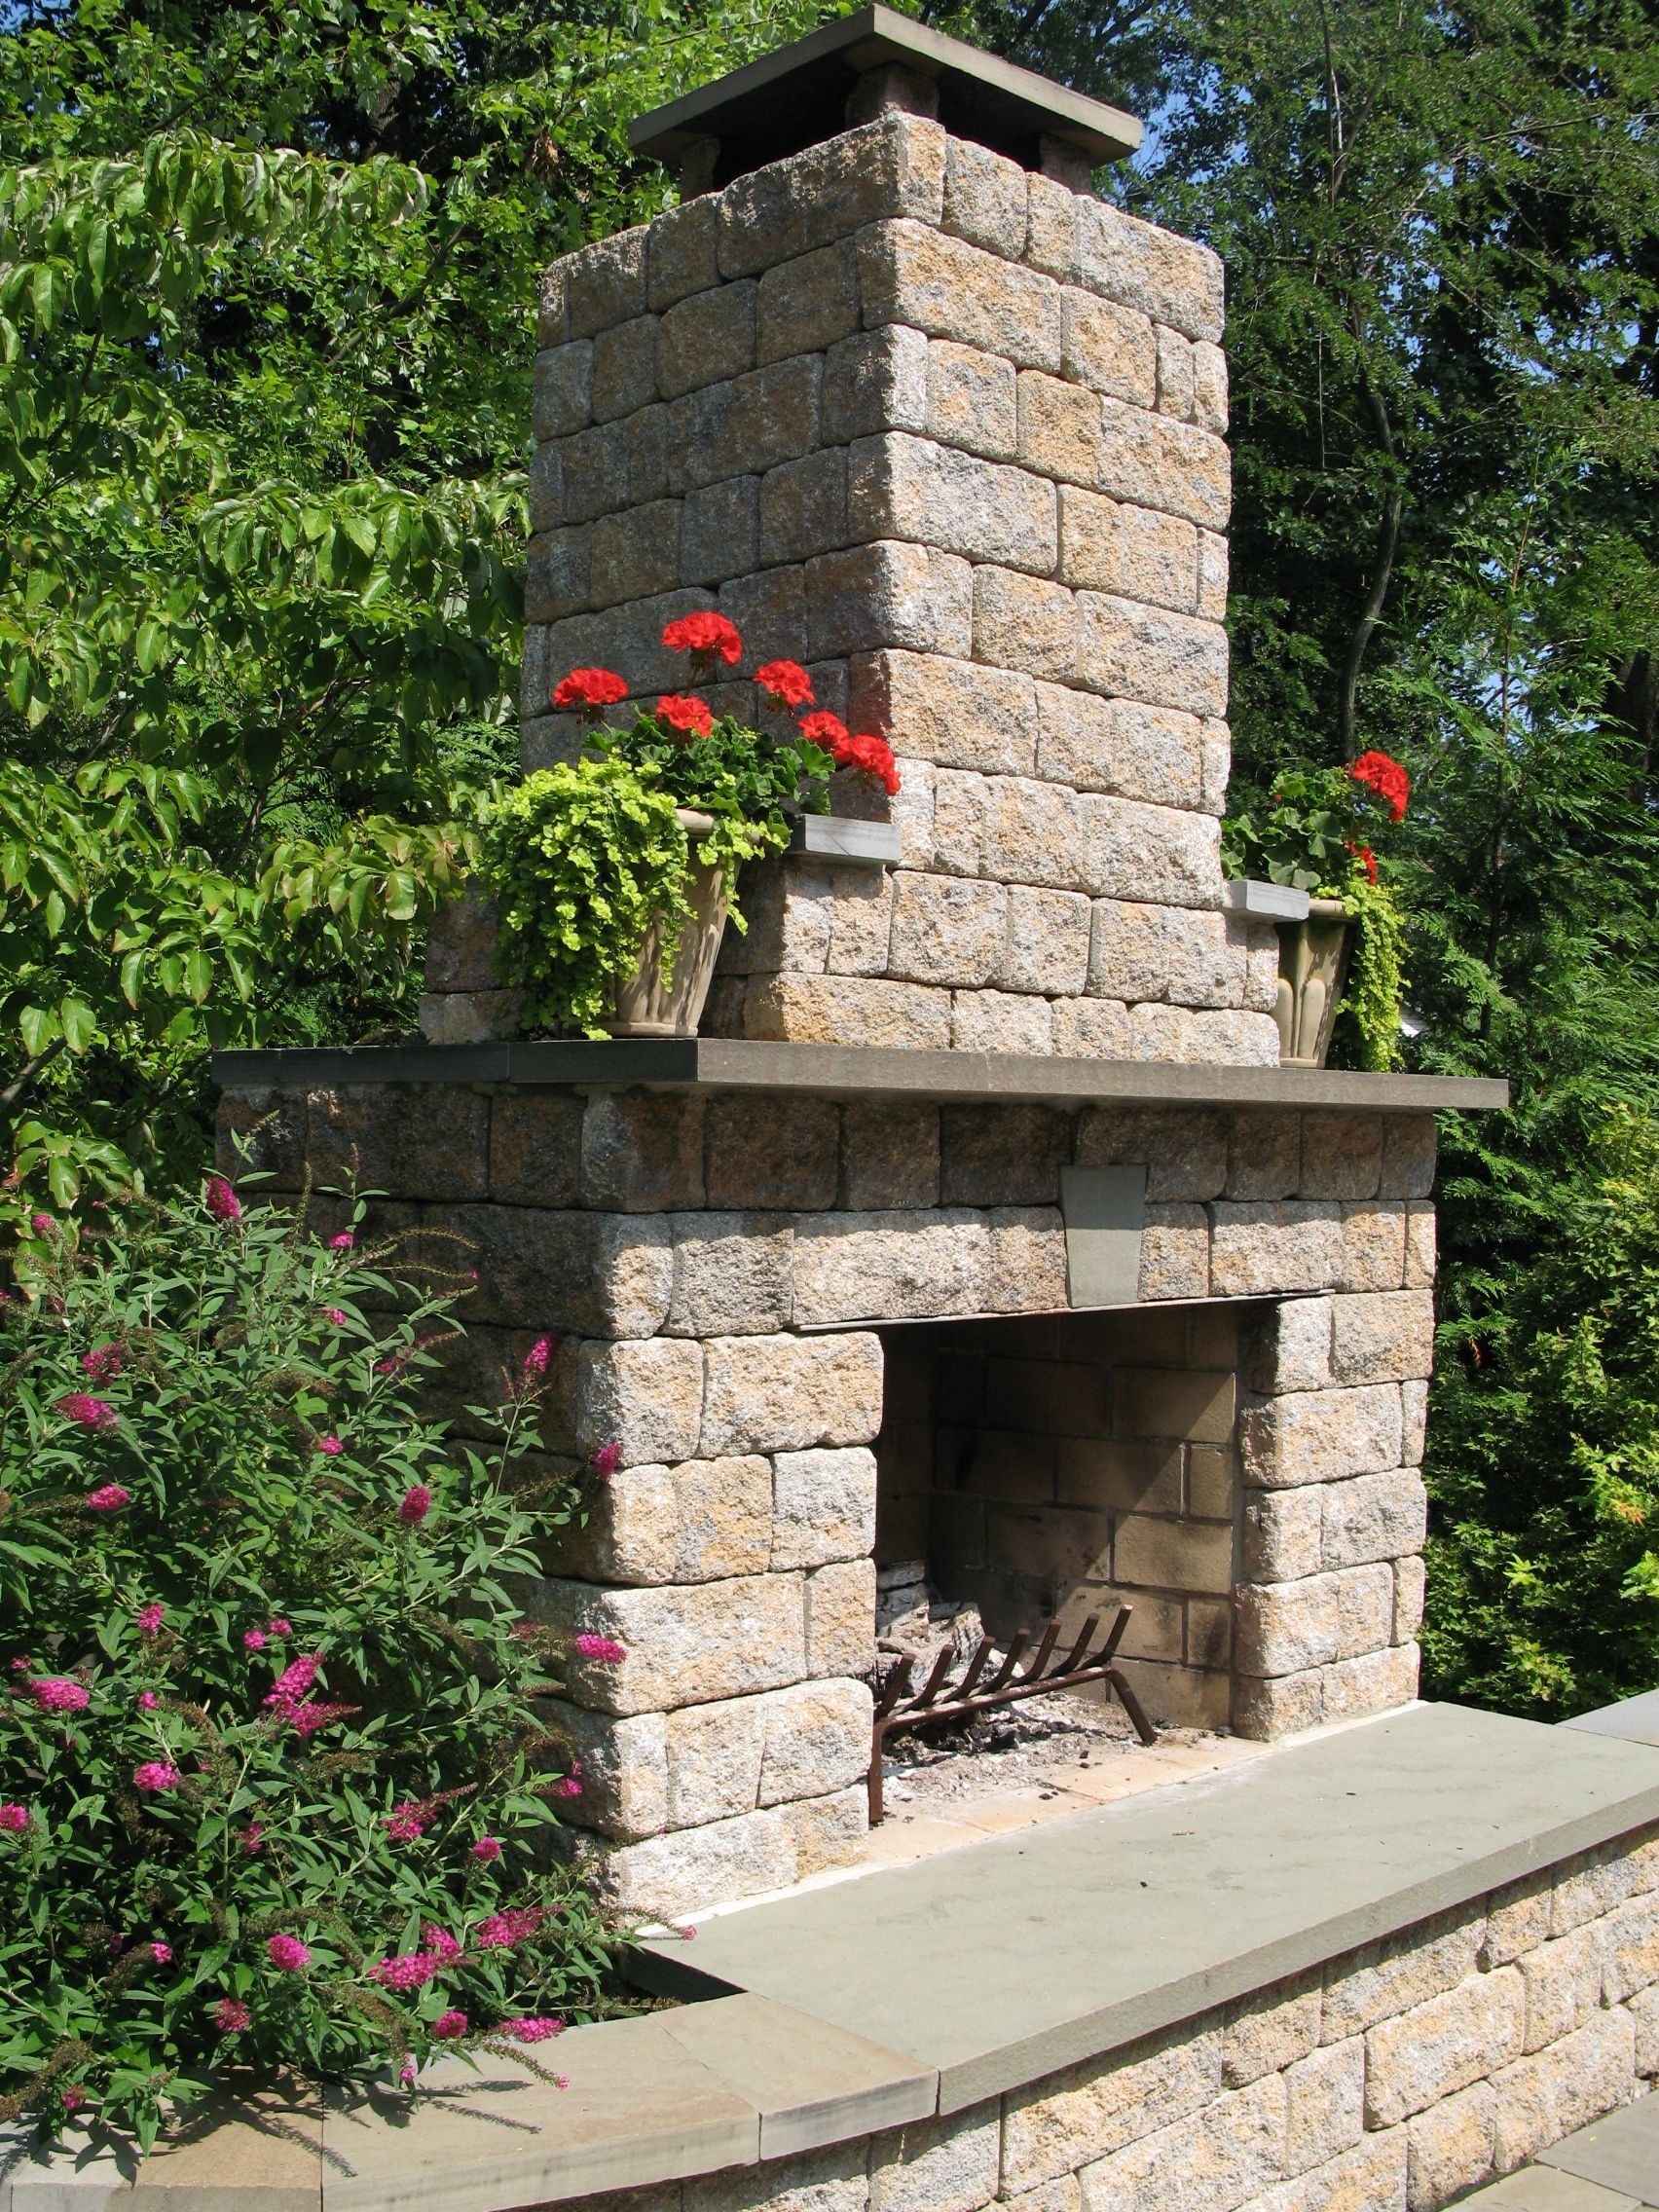 Outdoor Fireplace using Allan Block | Backyard fireplace ... on Building Outdoor Fireplace With Cinder Block id=12853